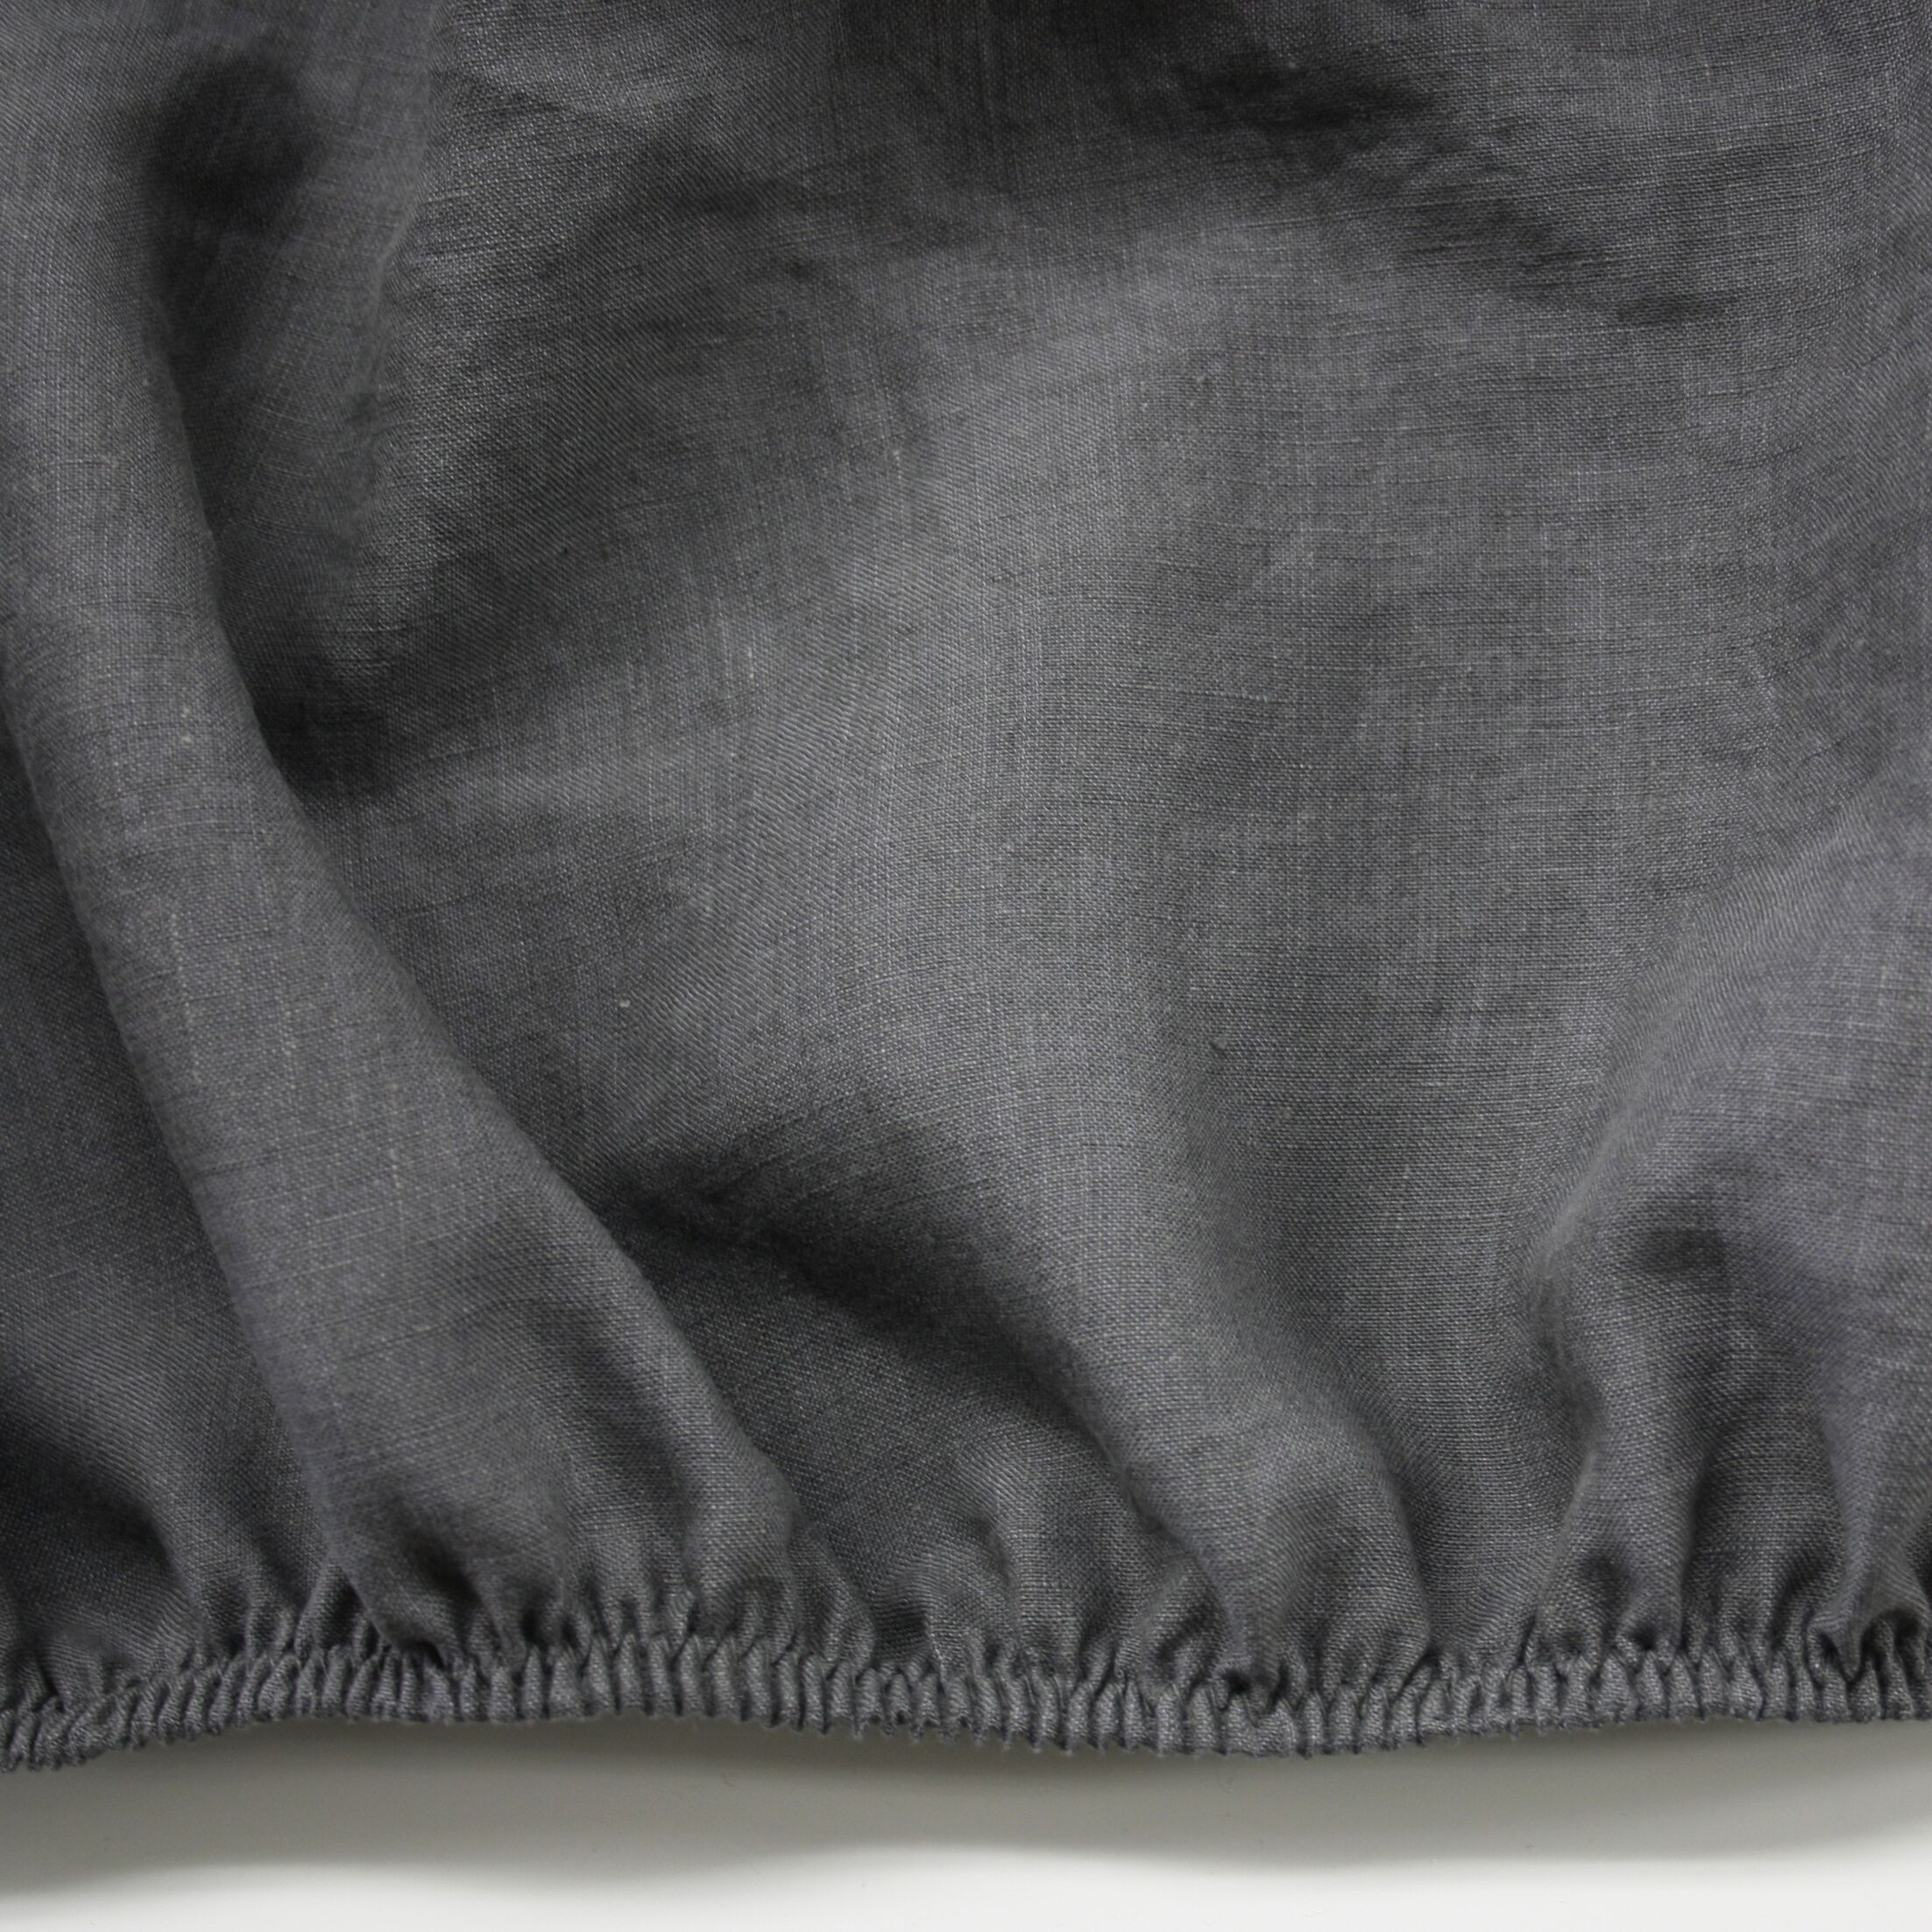 Linen Fitted Sheet Size: California King, Color: Graphite Gray